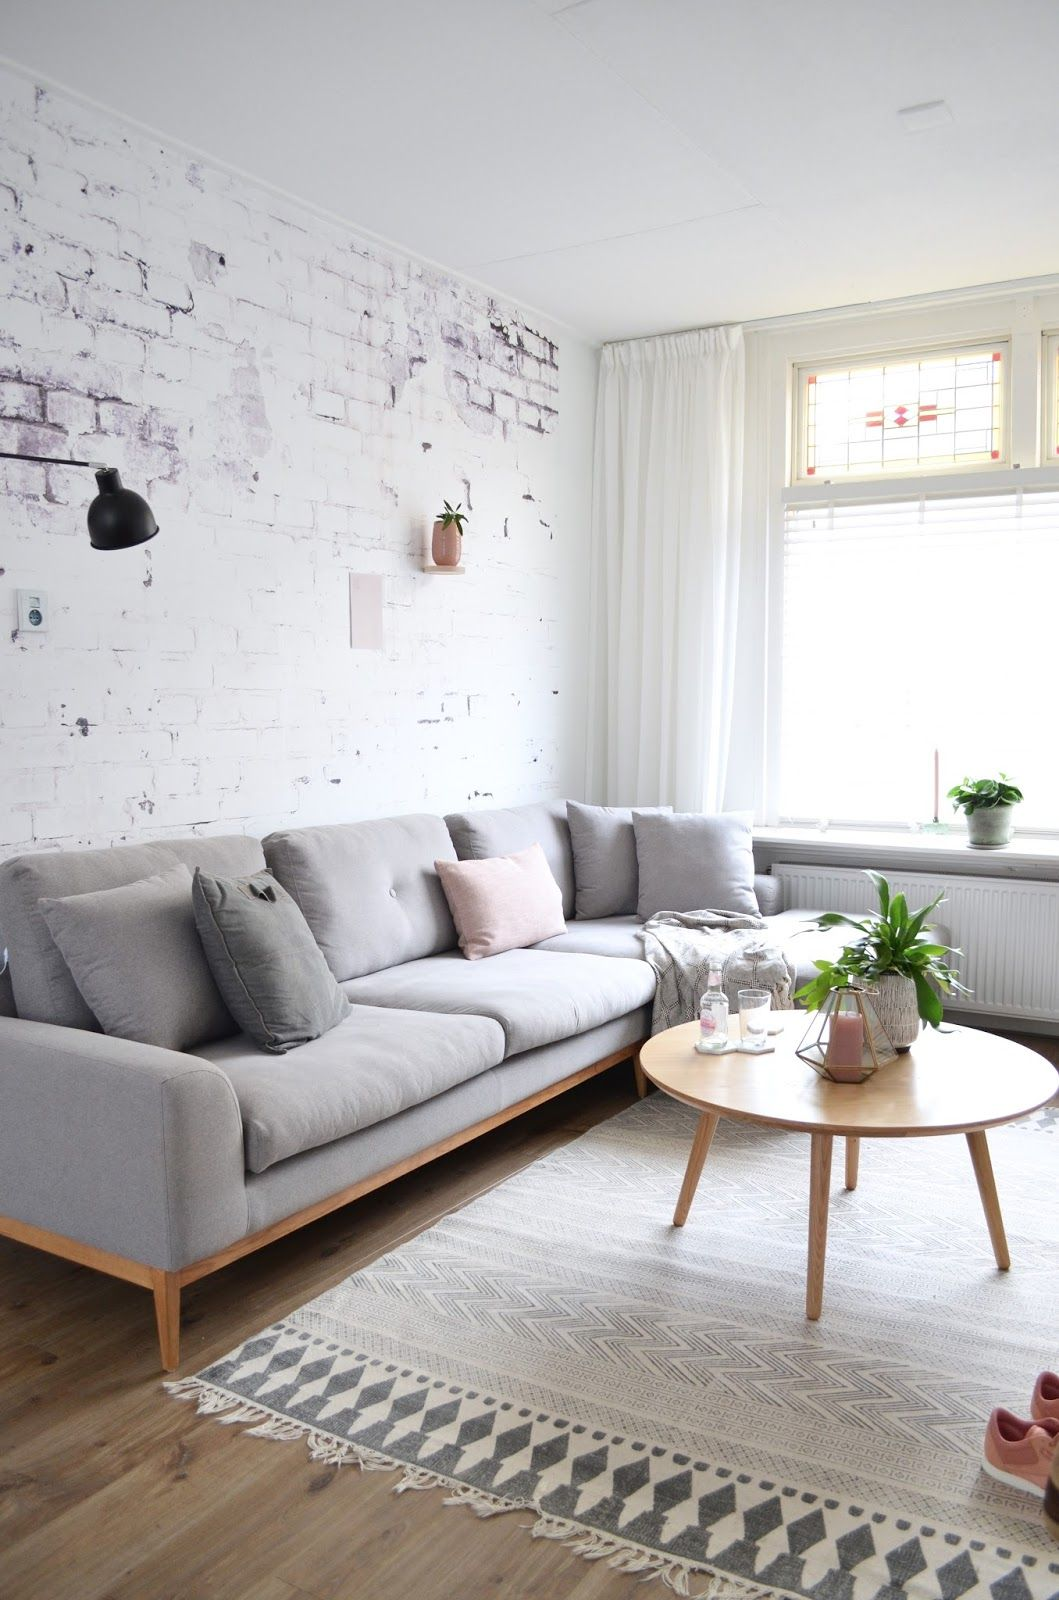 These Living Room Rug Rules Will Make You A Decorating Genius | Rug ...